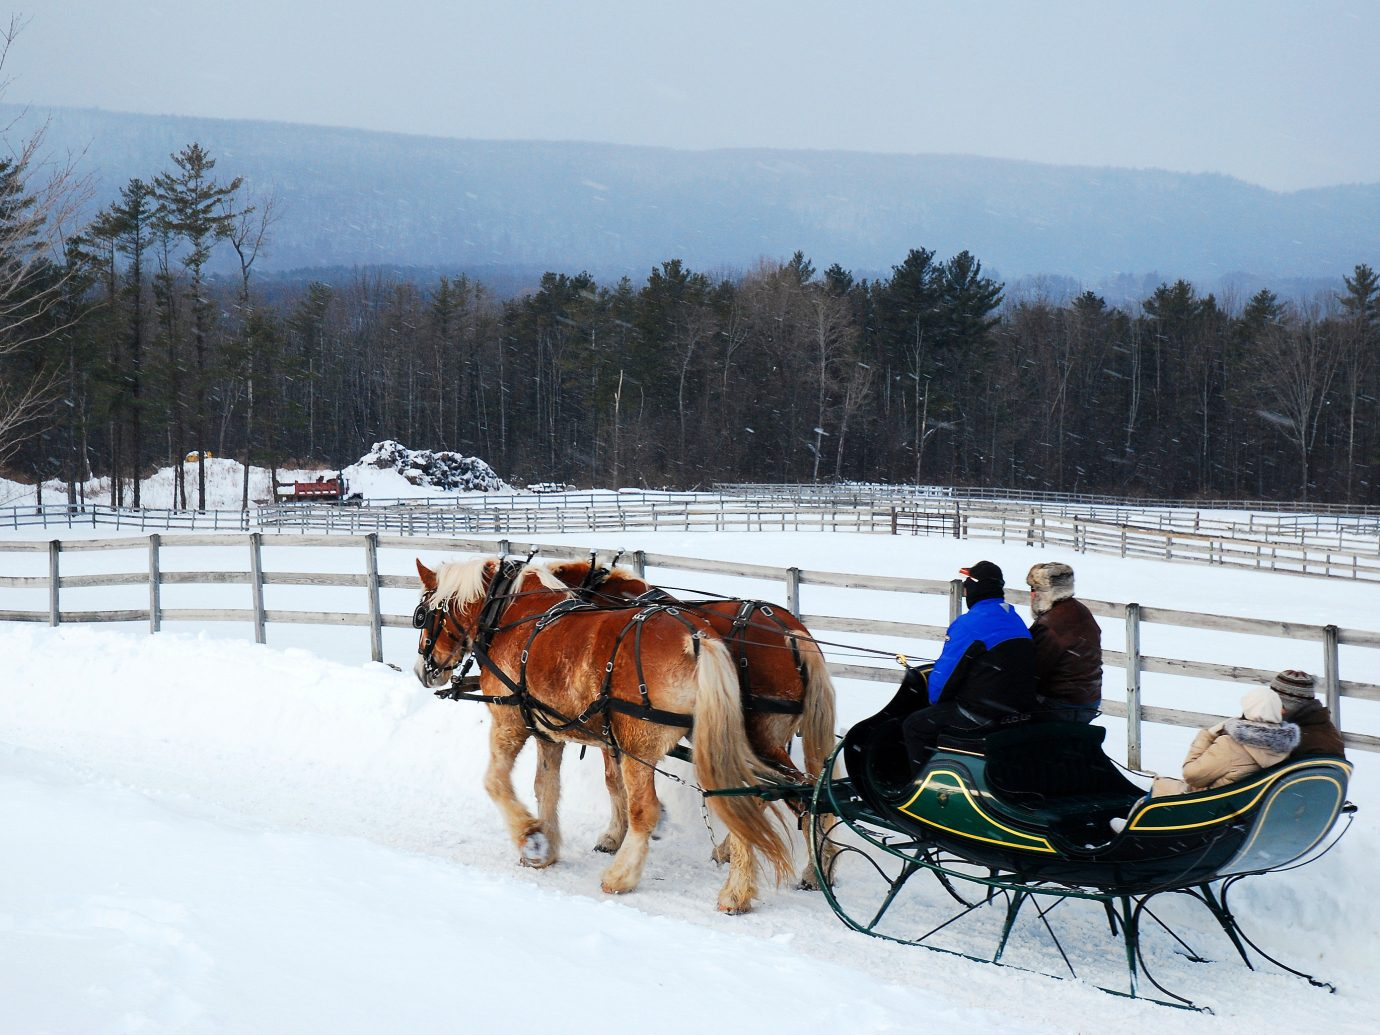 Boutique Hotels Romance Trip Ideas snow outdoor tree transport horse sky Winter sled horse harness sled dog racing mushing pulling carriage dog sled pack animal horse like mammal freezing ice drawn pulled